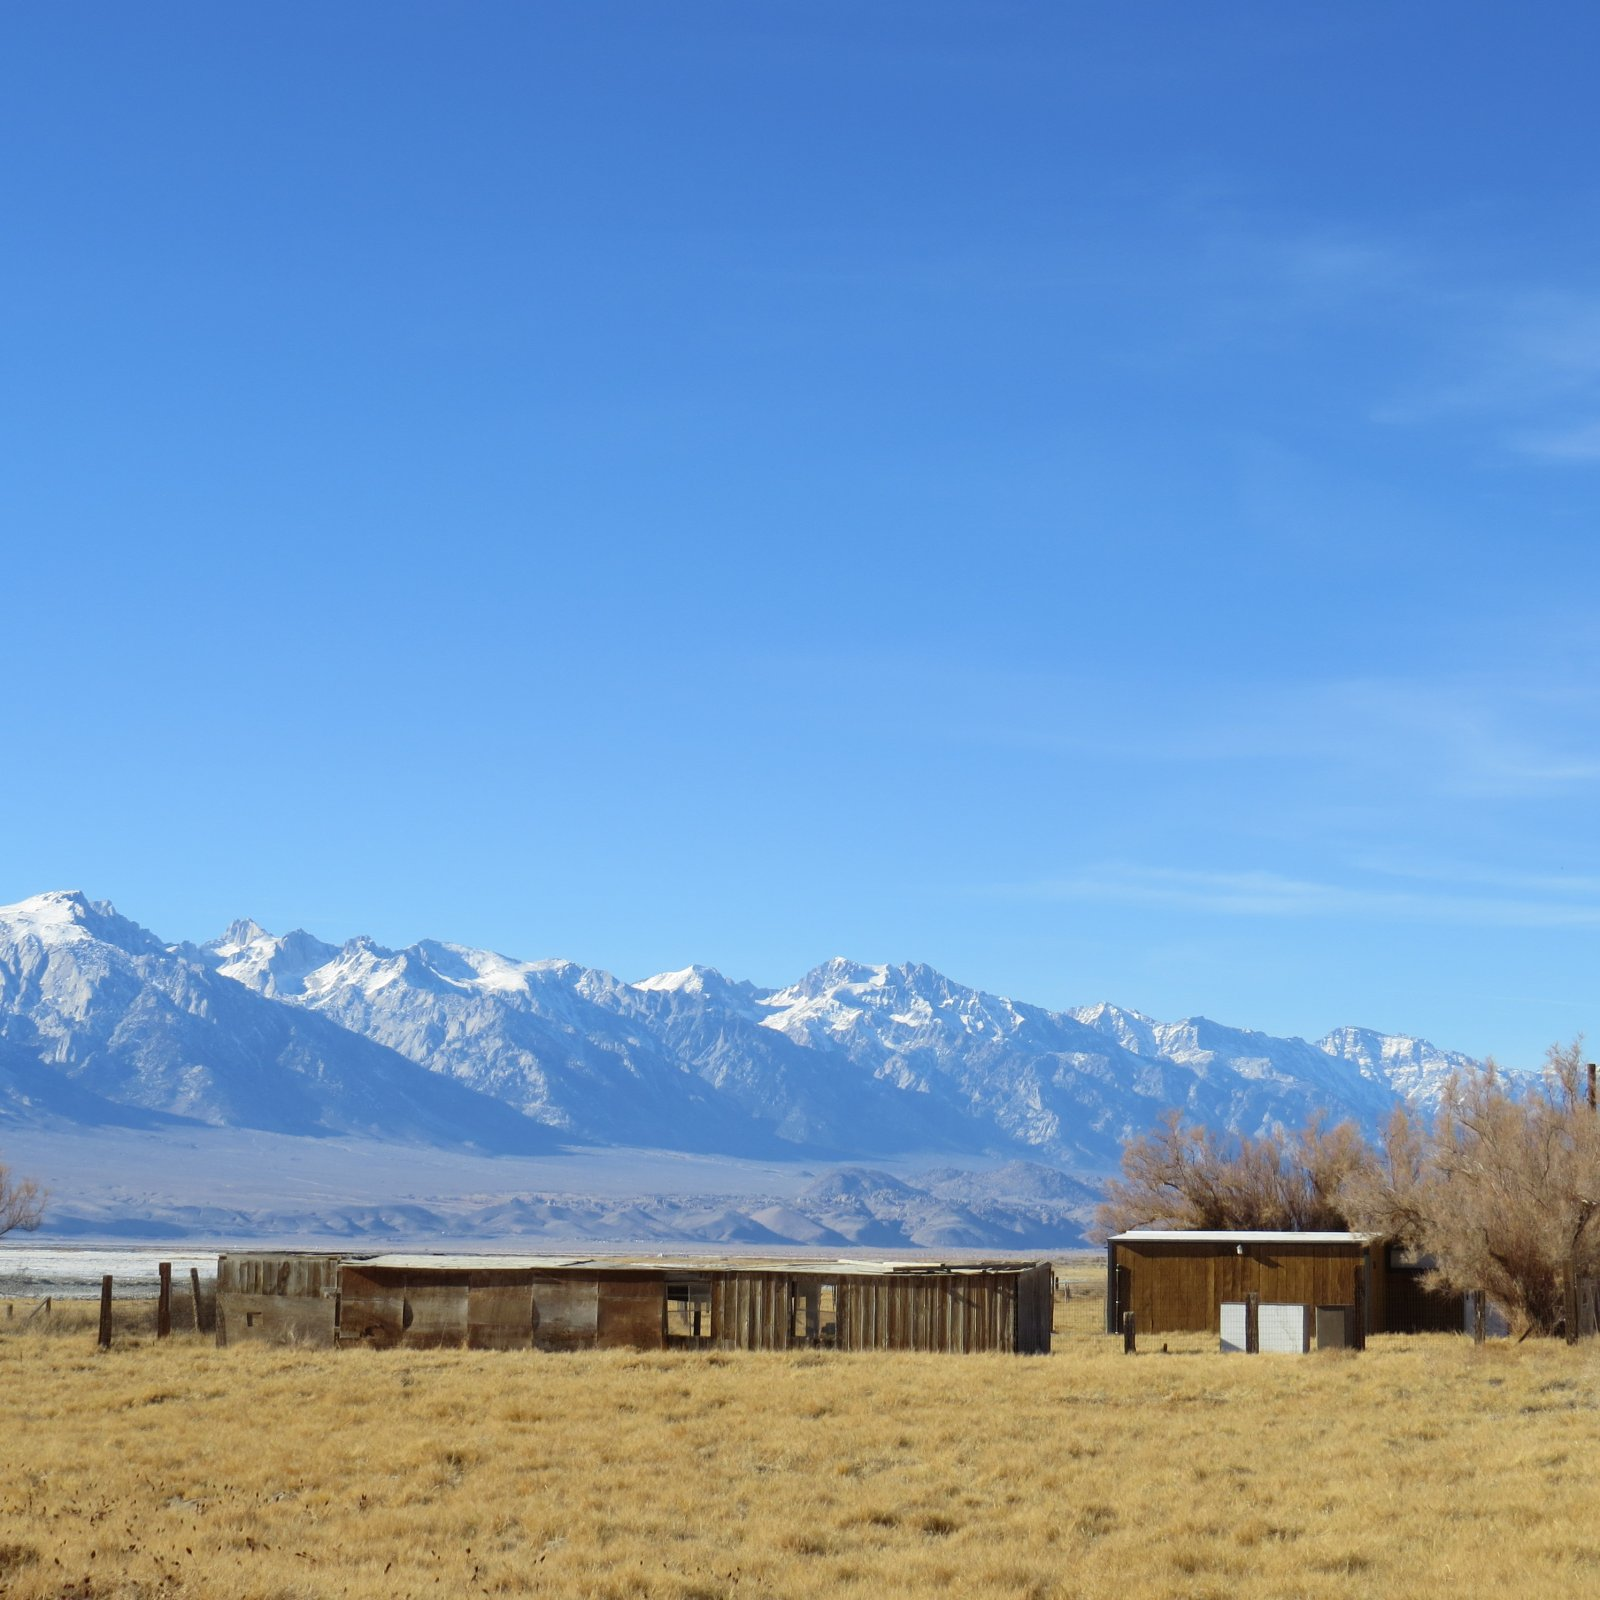 Click image for larger version  Name:Lone Pine Christmas 2013 075.jpg Views:158 Size:256.1 KB ID:206759